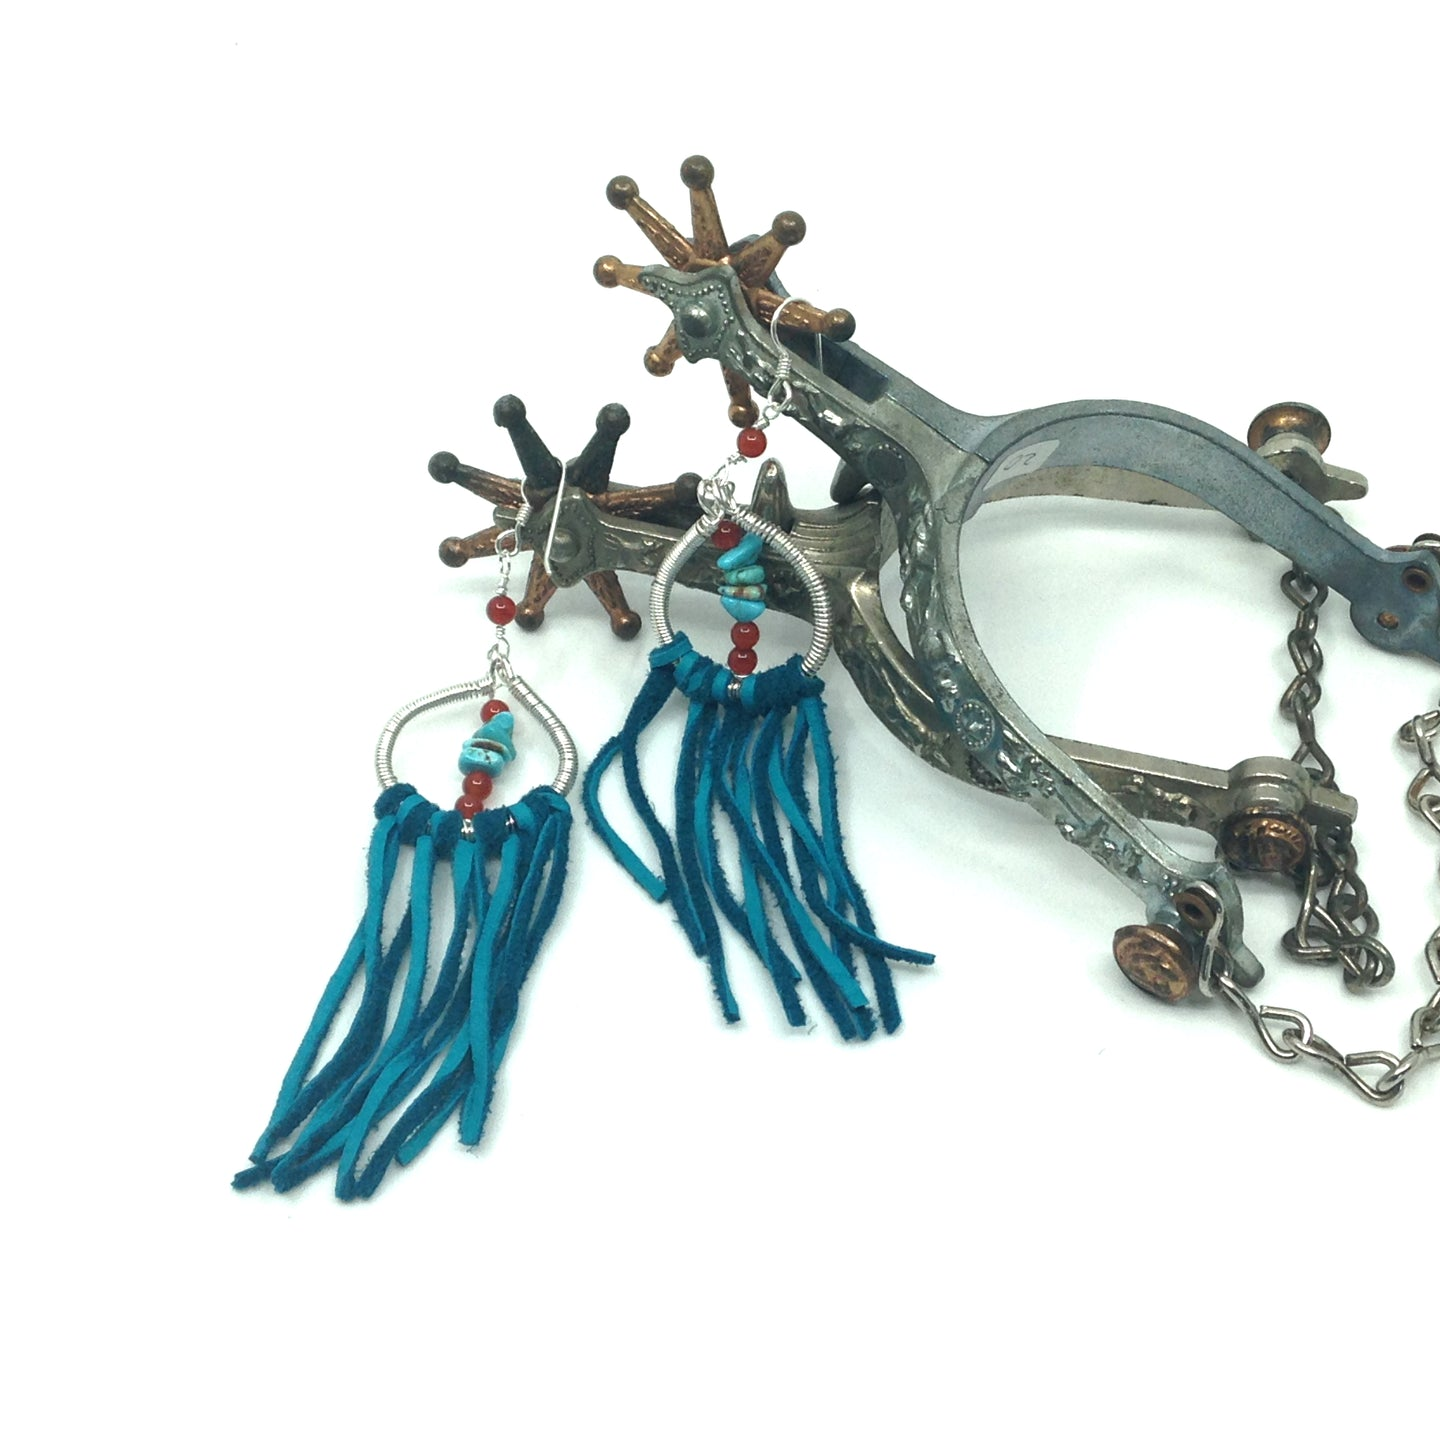 DCS003-S sterling silver dream catcher earrings with turquoise fringe